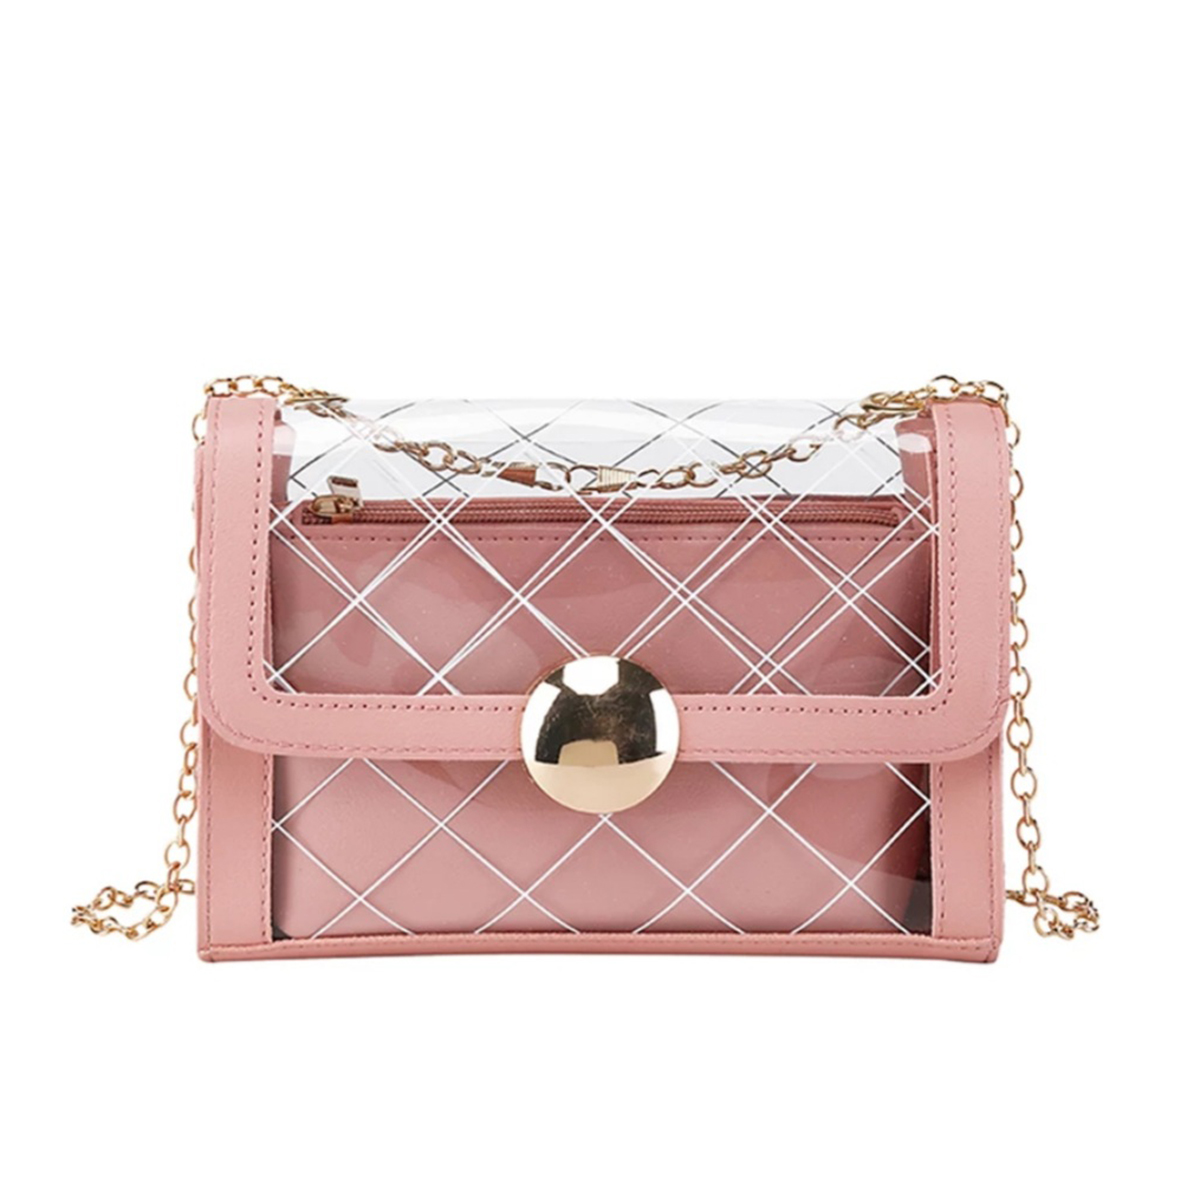 Handbag For Girls and women 2 in 1 Transparent Printed Crossbody Bag + Leather Purse Set for Women